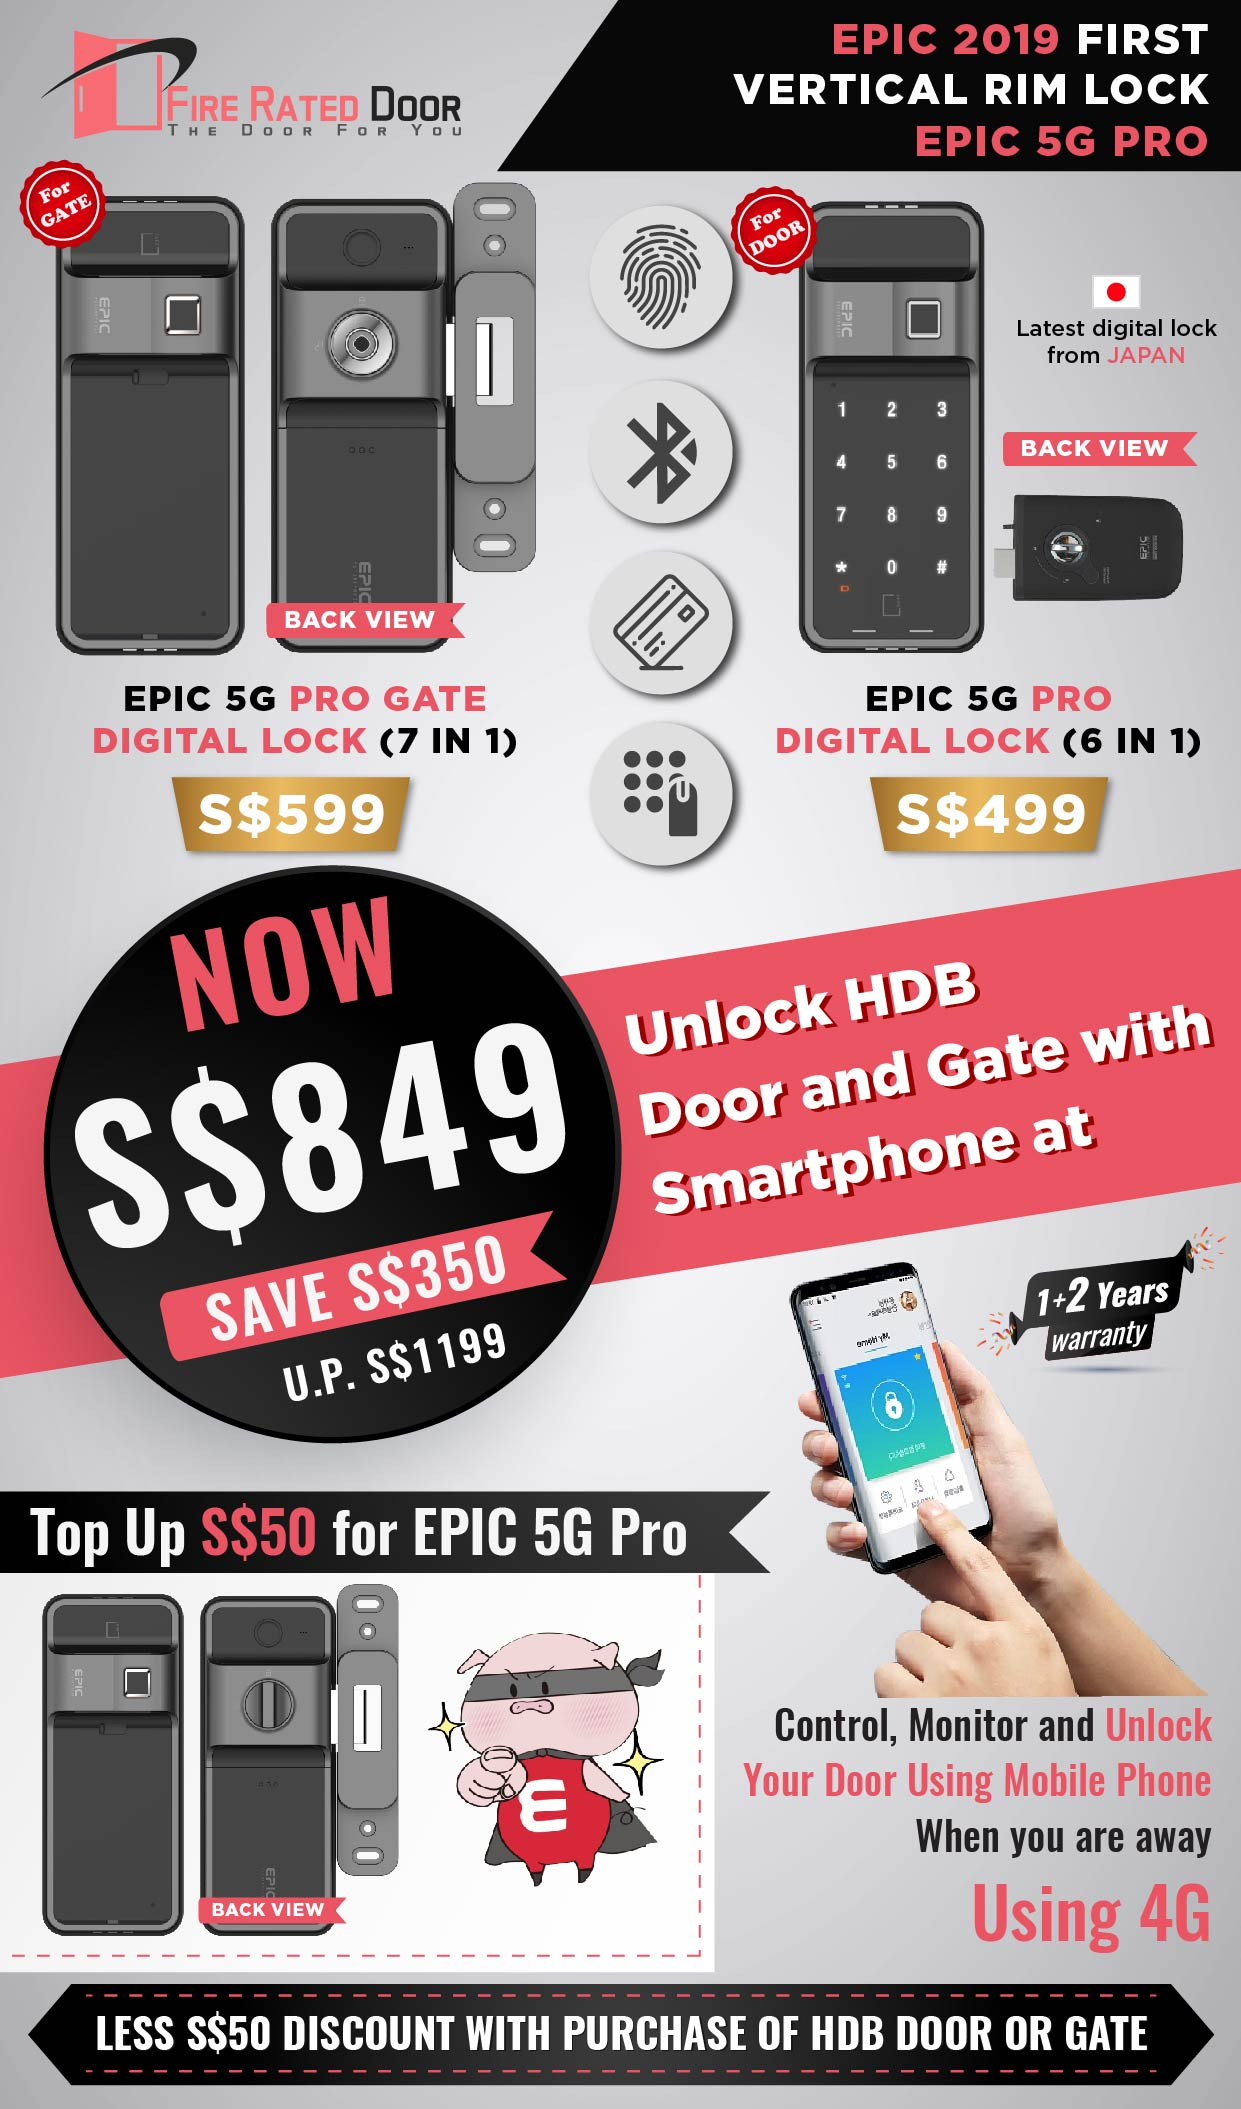 First Vertical Rim Lock EPIC 5G Pro